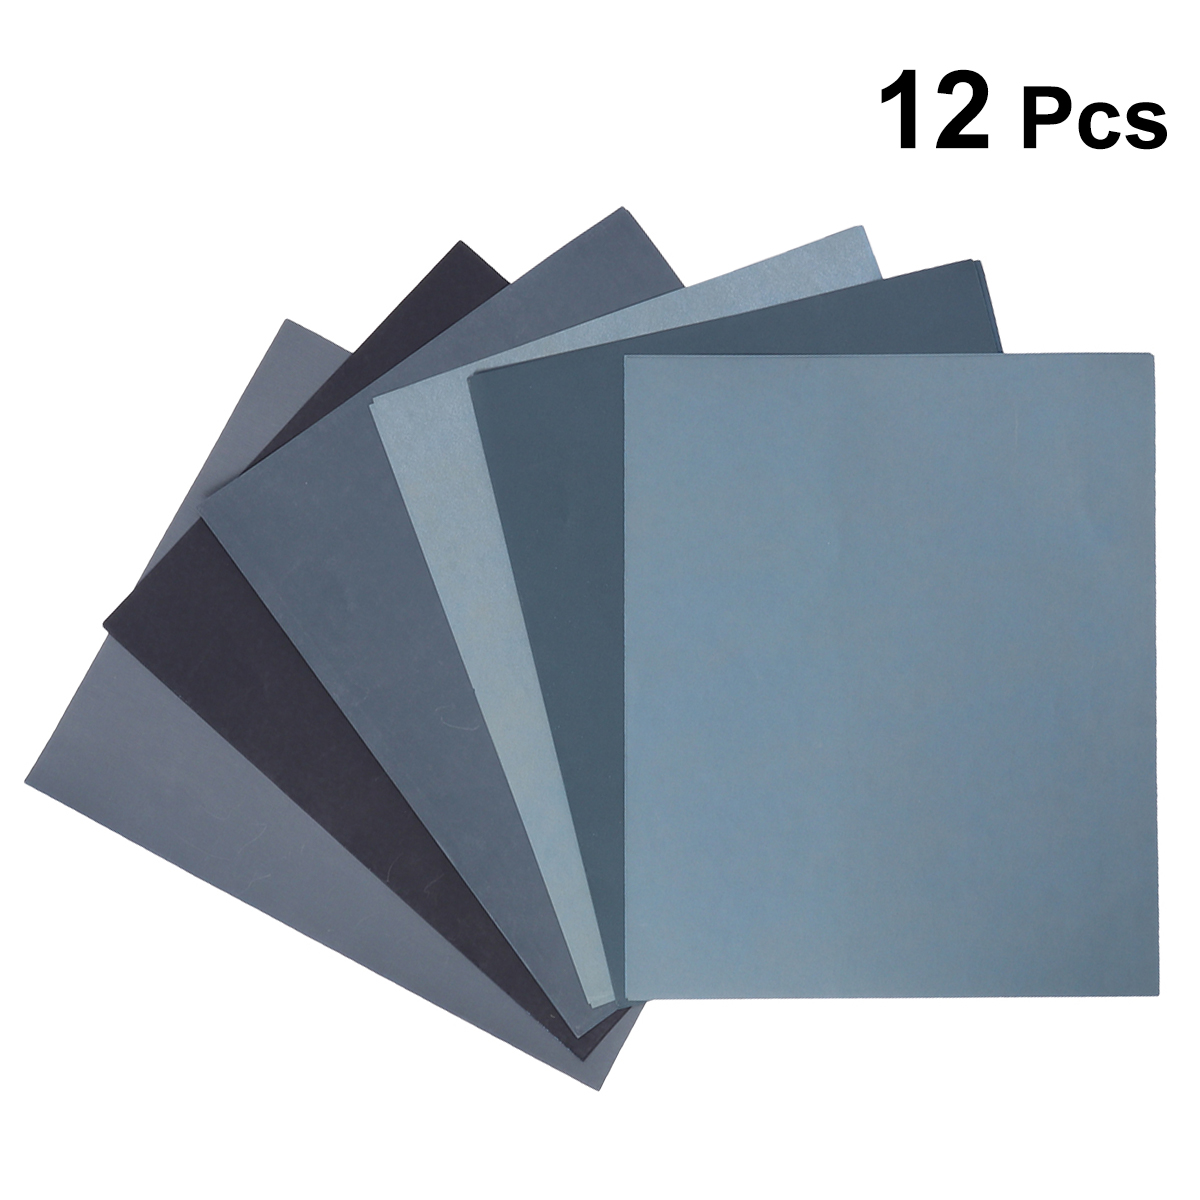 Sandpaper For Metal >> Us 7 45 44 Off 12 In 1 Dry Wet Sandpaper Assorted Abrasive Sand Paper For Wood Metal Automotive Sanding Furniture And Wood Turning Finishing In